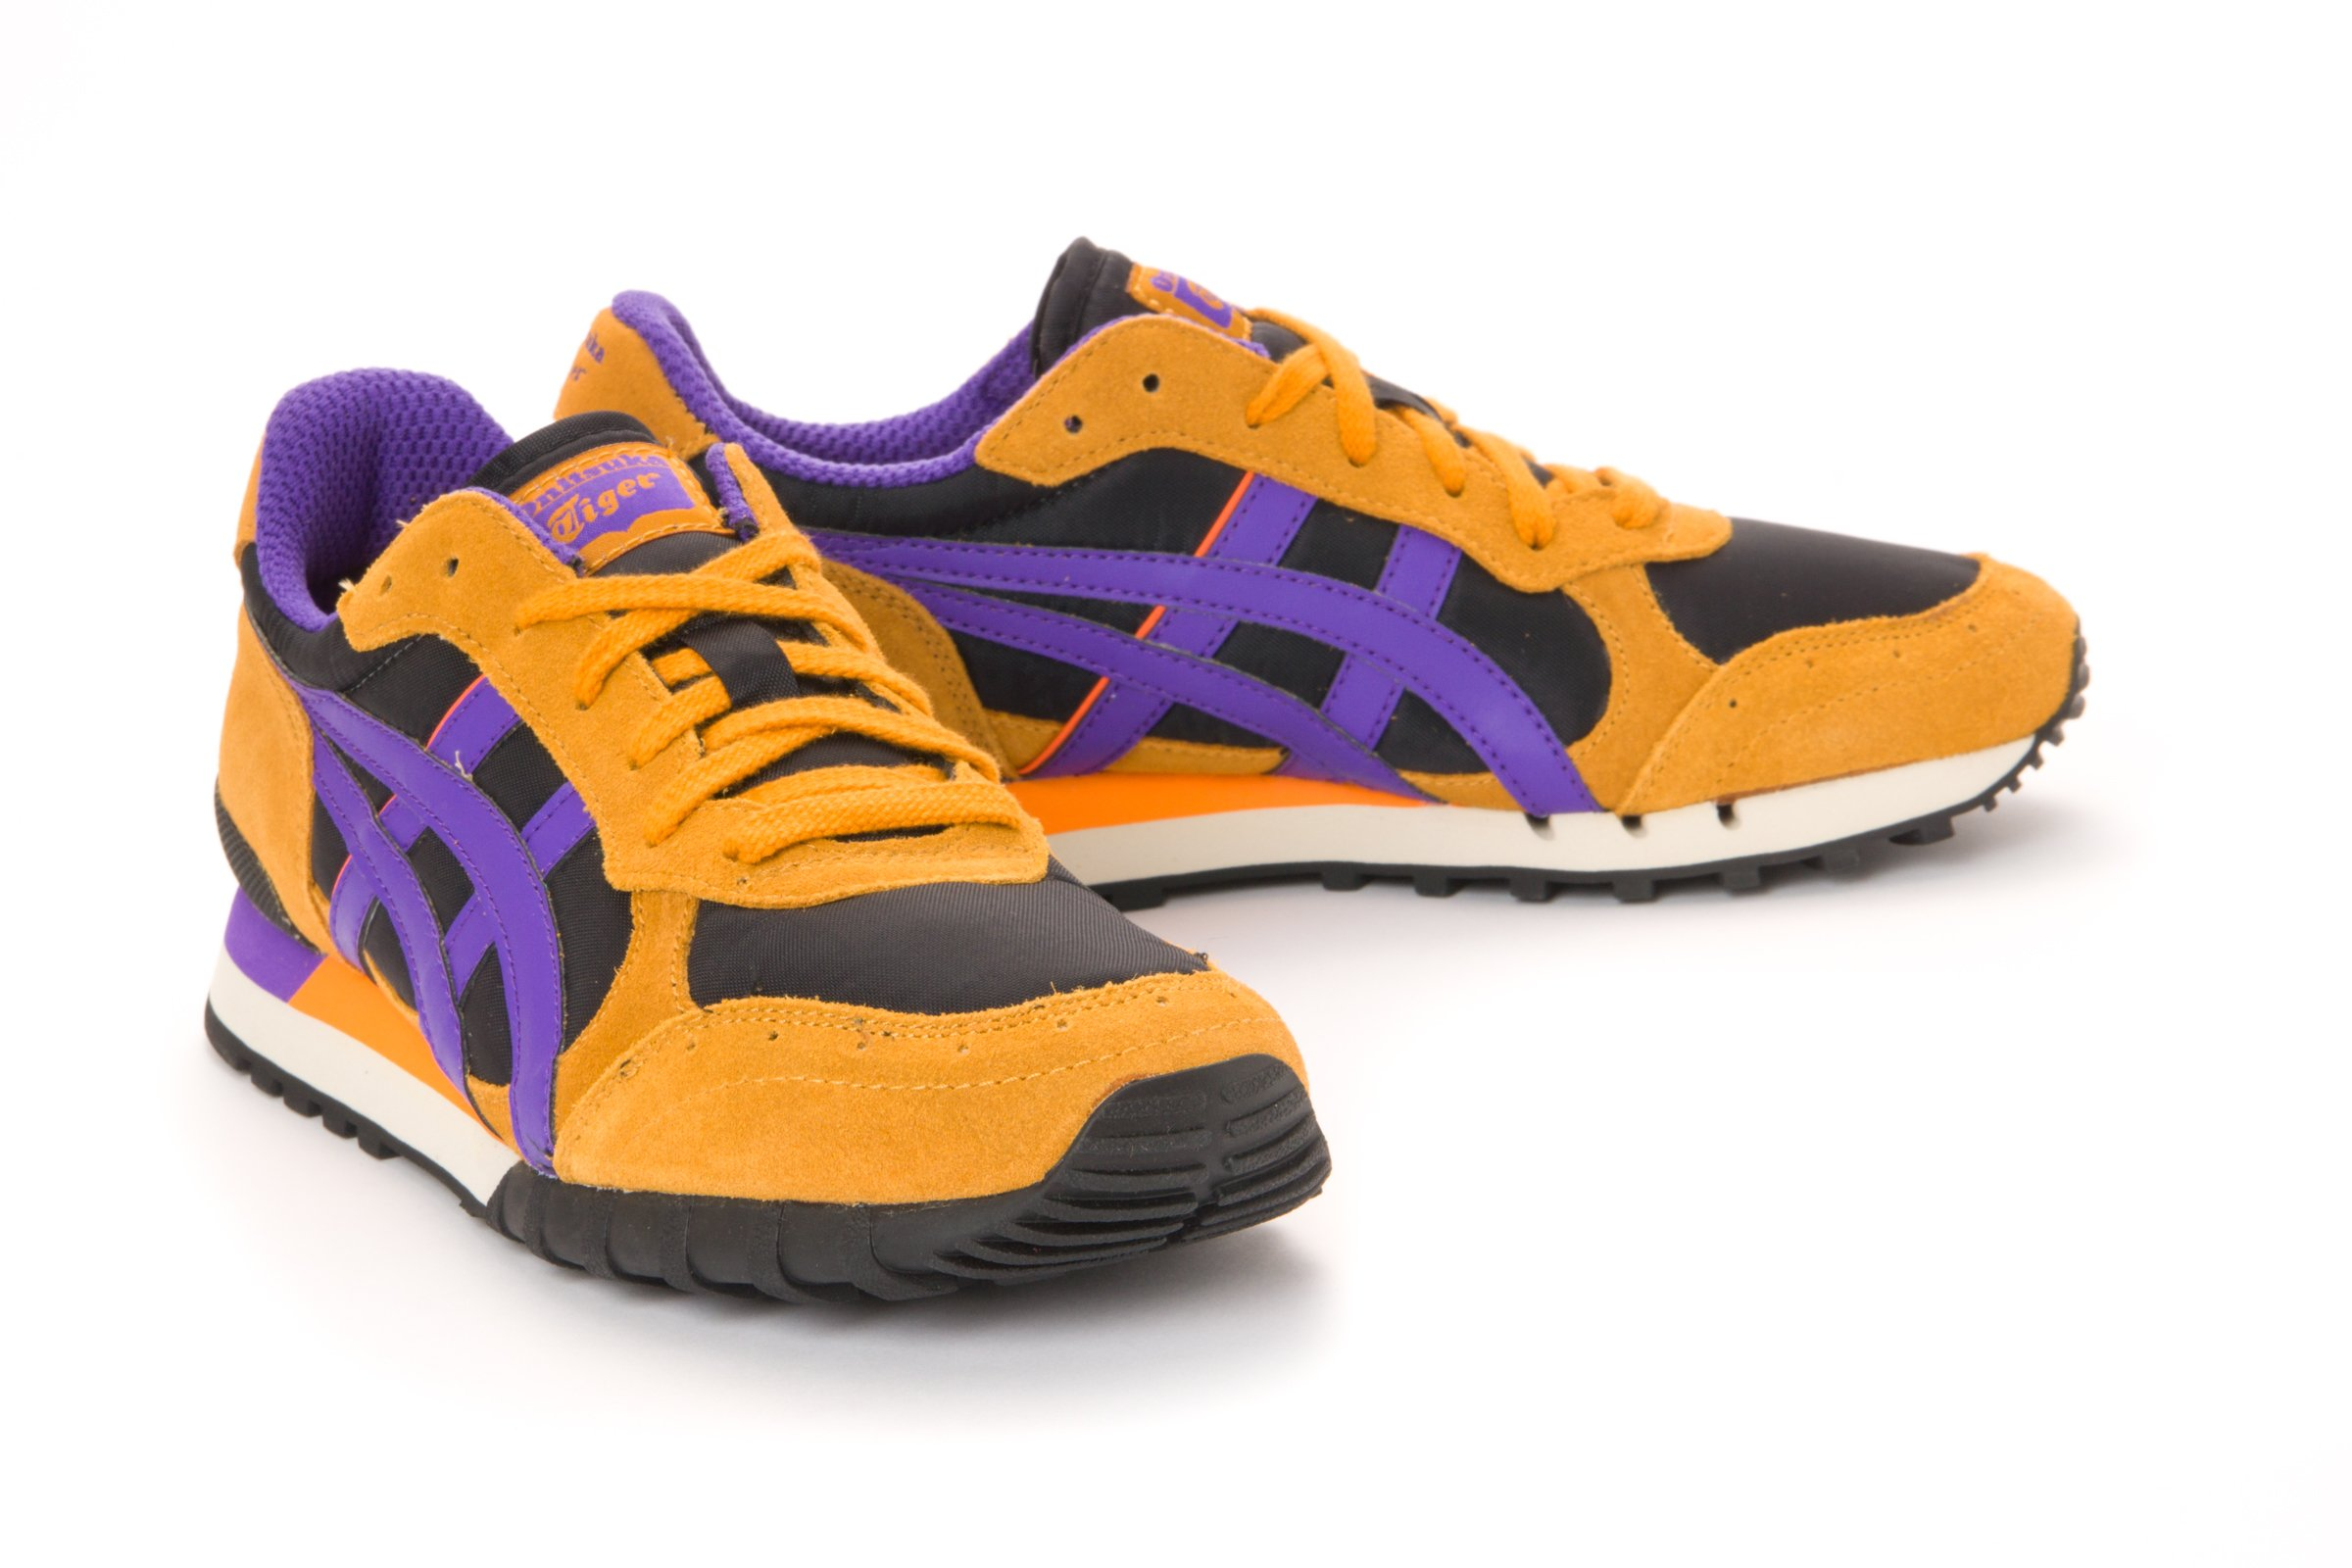 online store 7792b 2c79d Galleon - Asics Onitsuka Tiger COLORADO EIGHTY-FIVE Casual ...